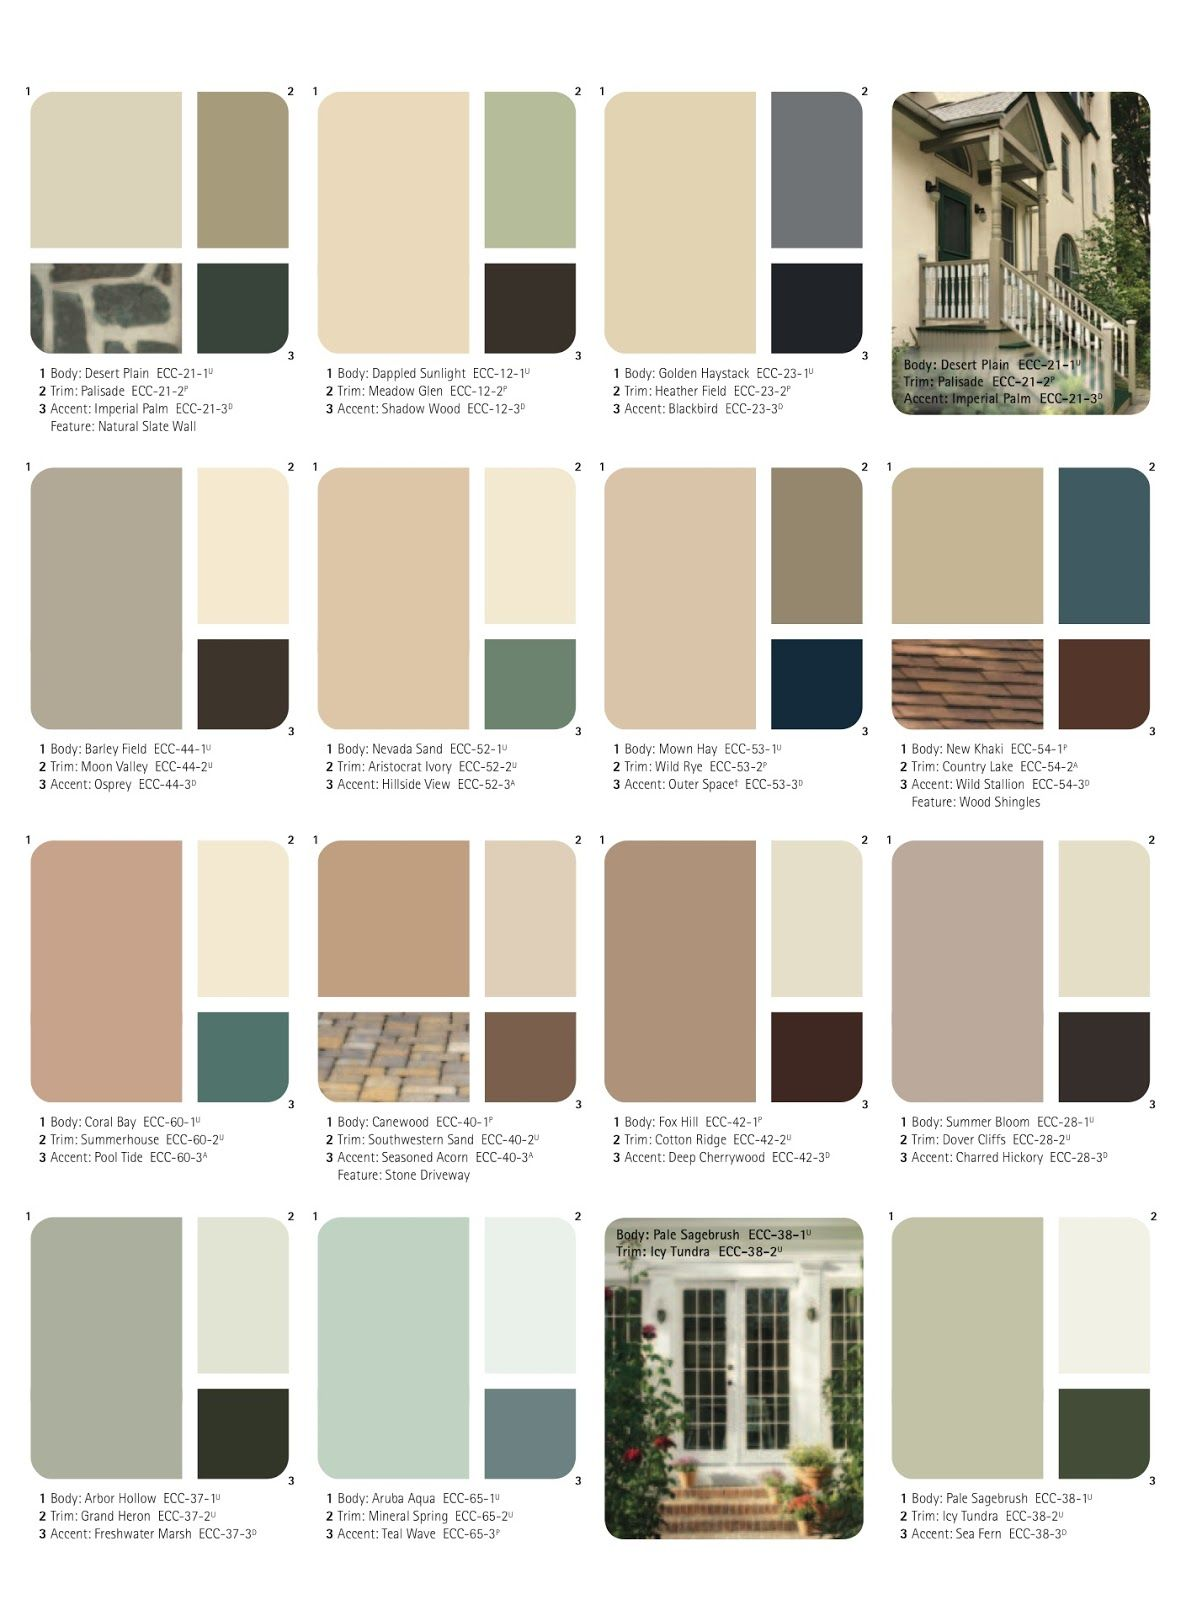 Magnificent 17 Best Images About What Color Should I Paint The House On Largest Home Design Picture Inspirations Pitcheantrous